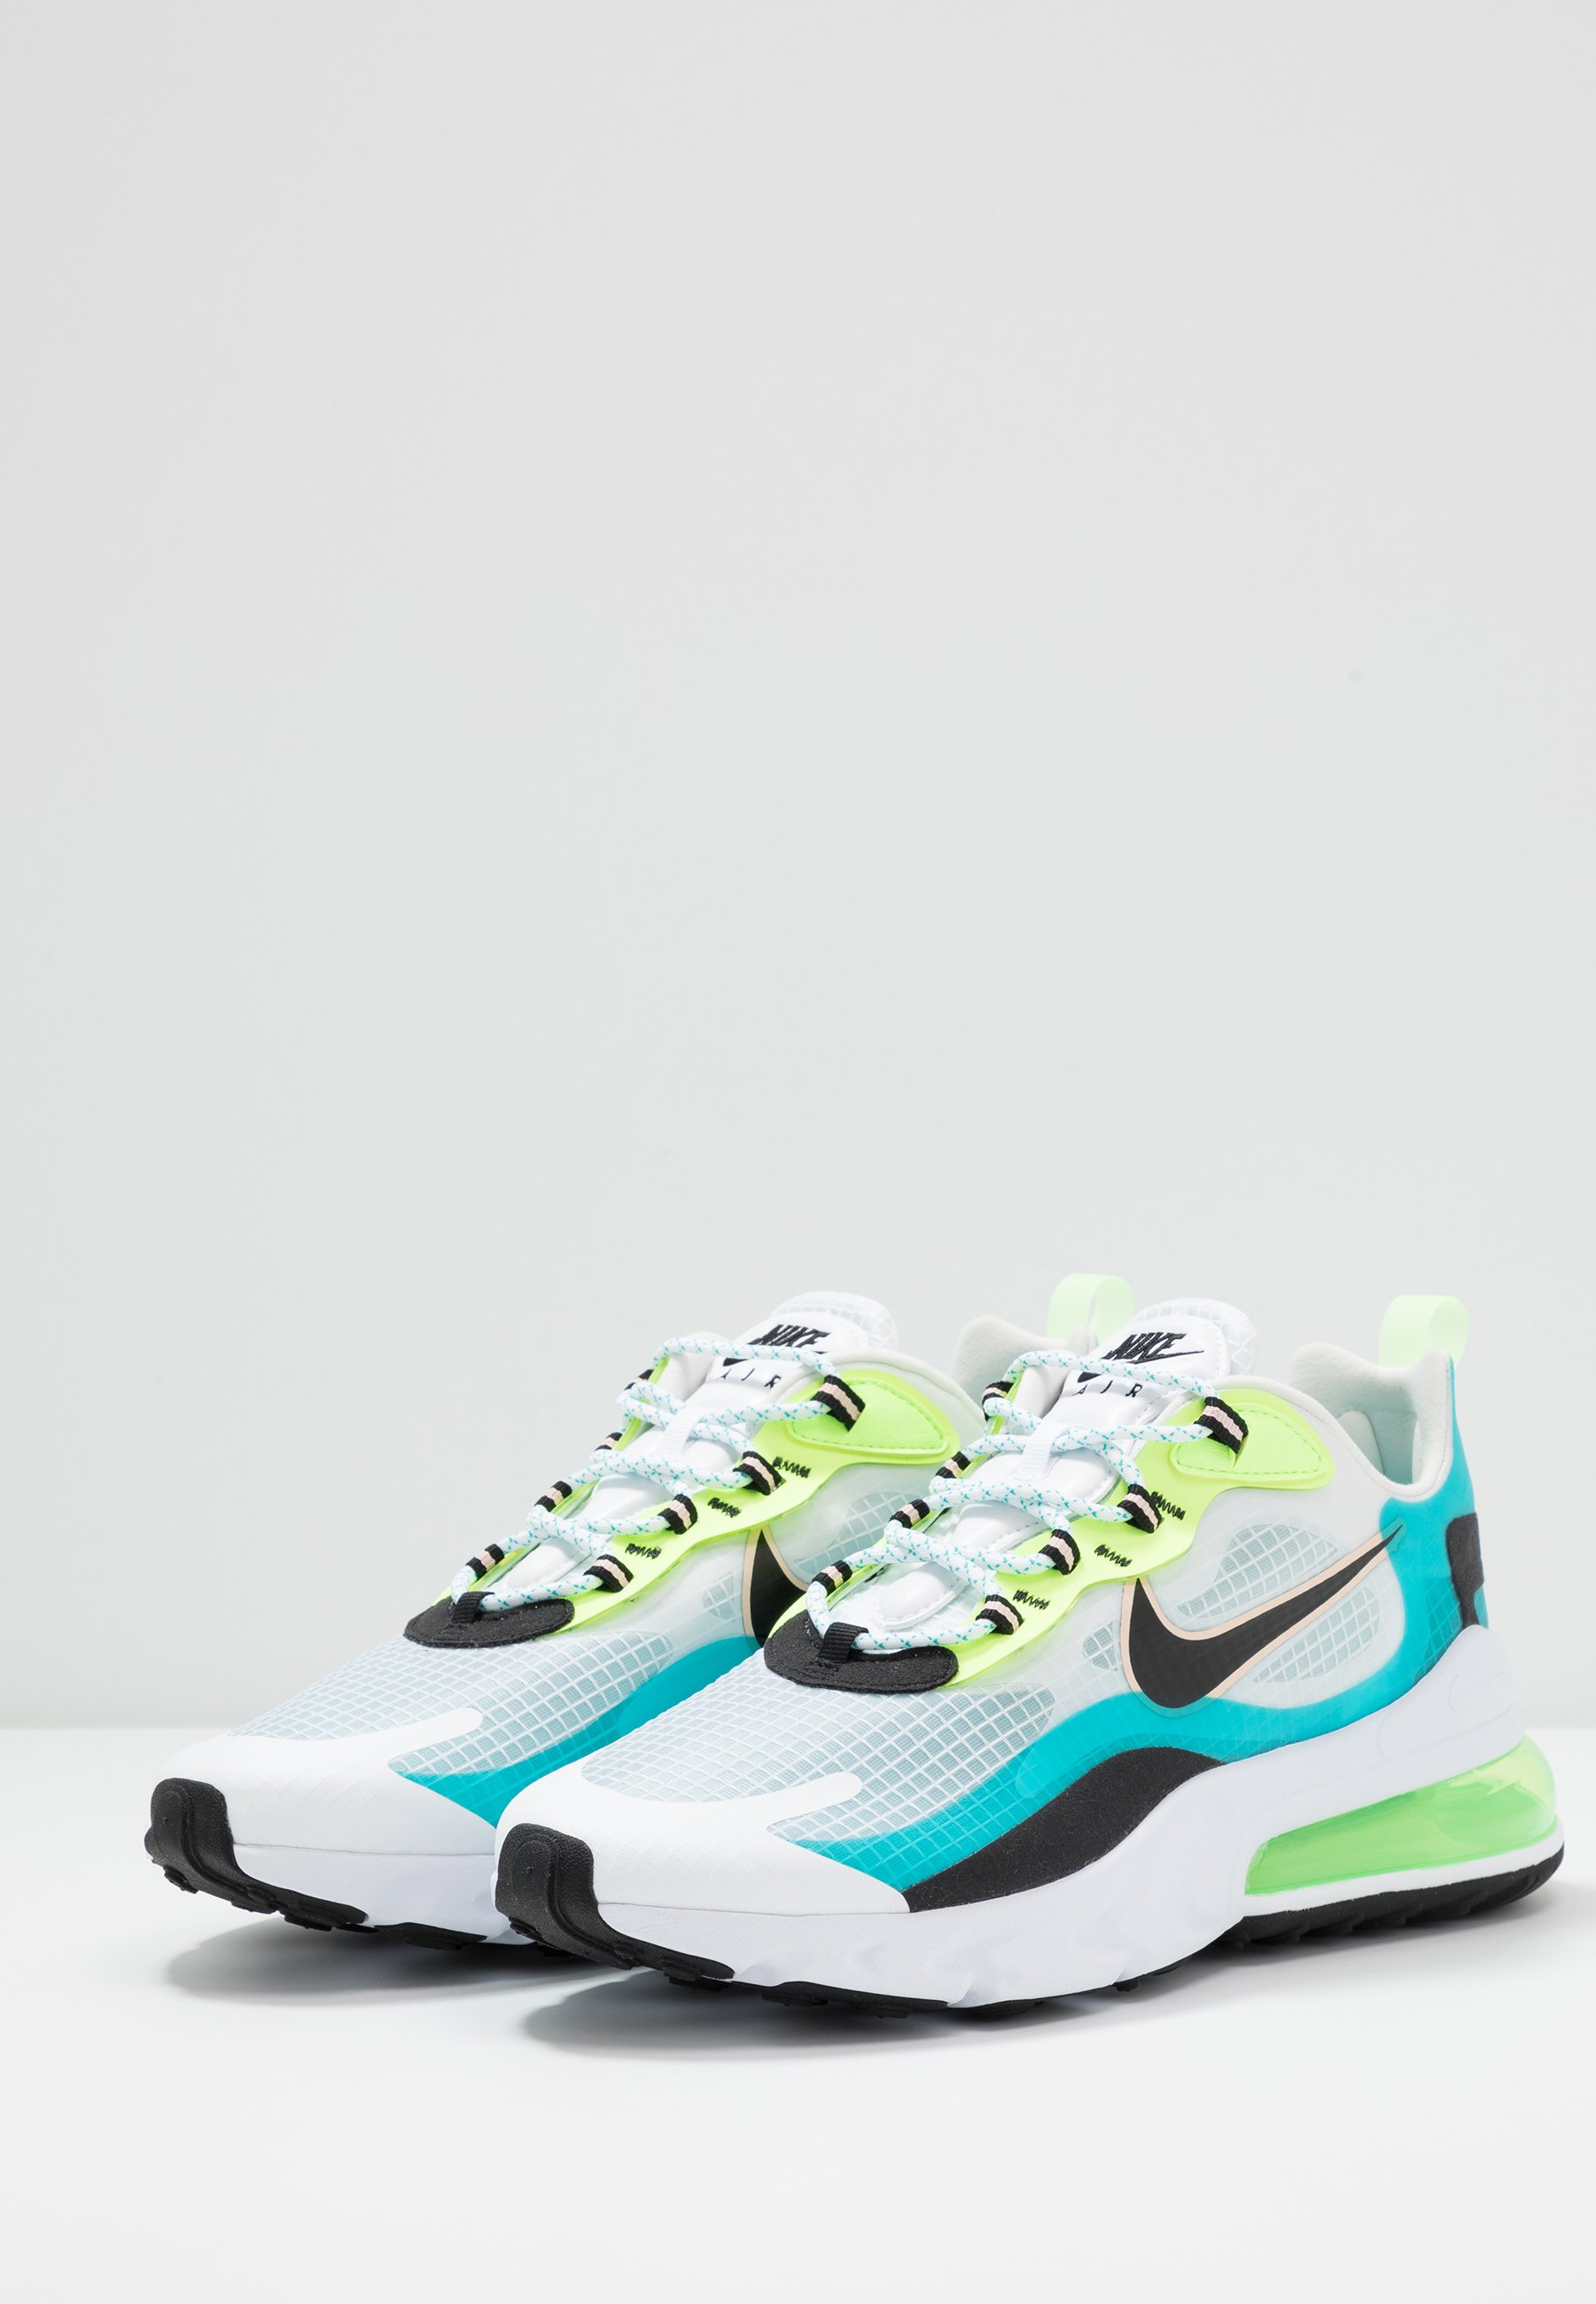 AIR MAX 270 REACT SE Sneakers oracle aquablackghost greenwashed coralwhite